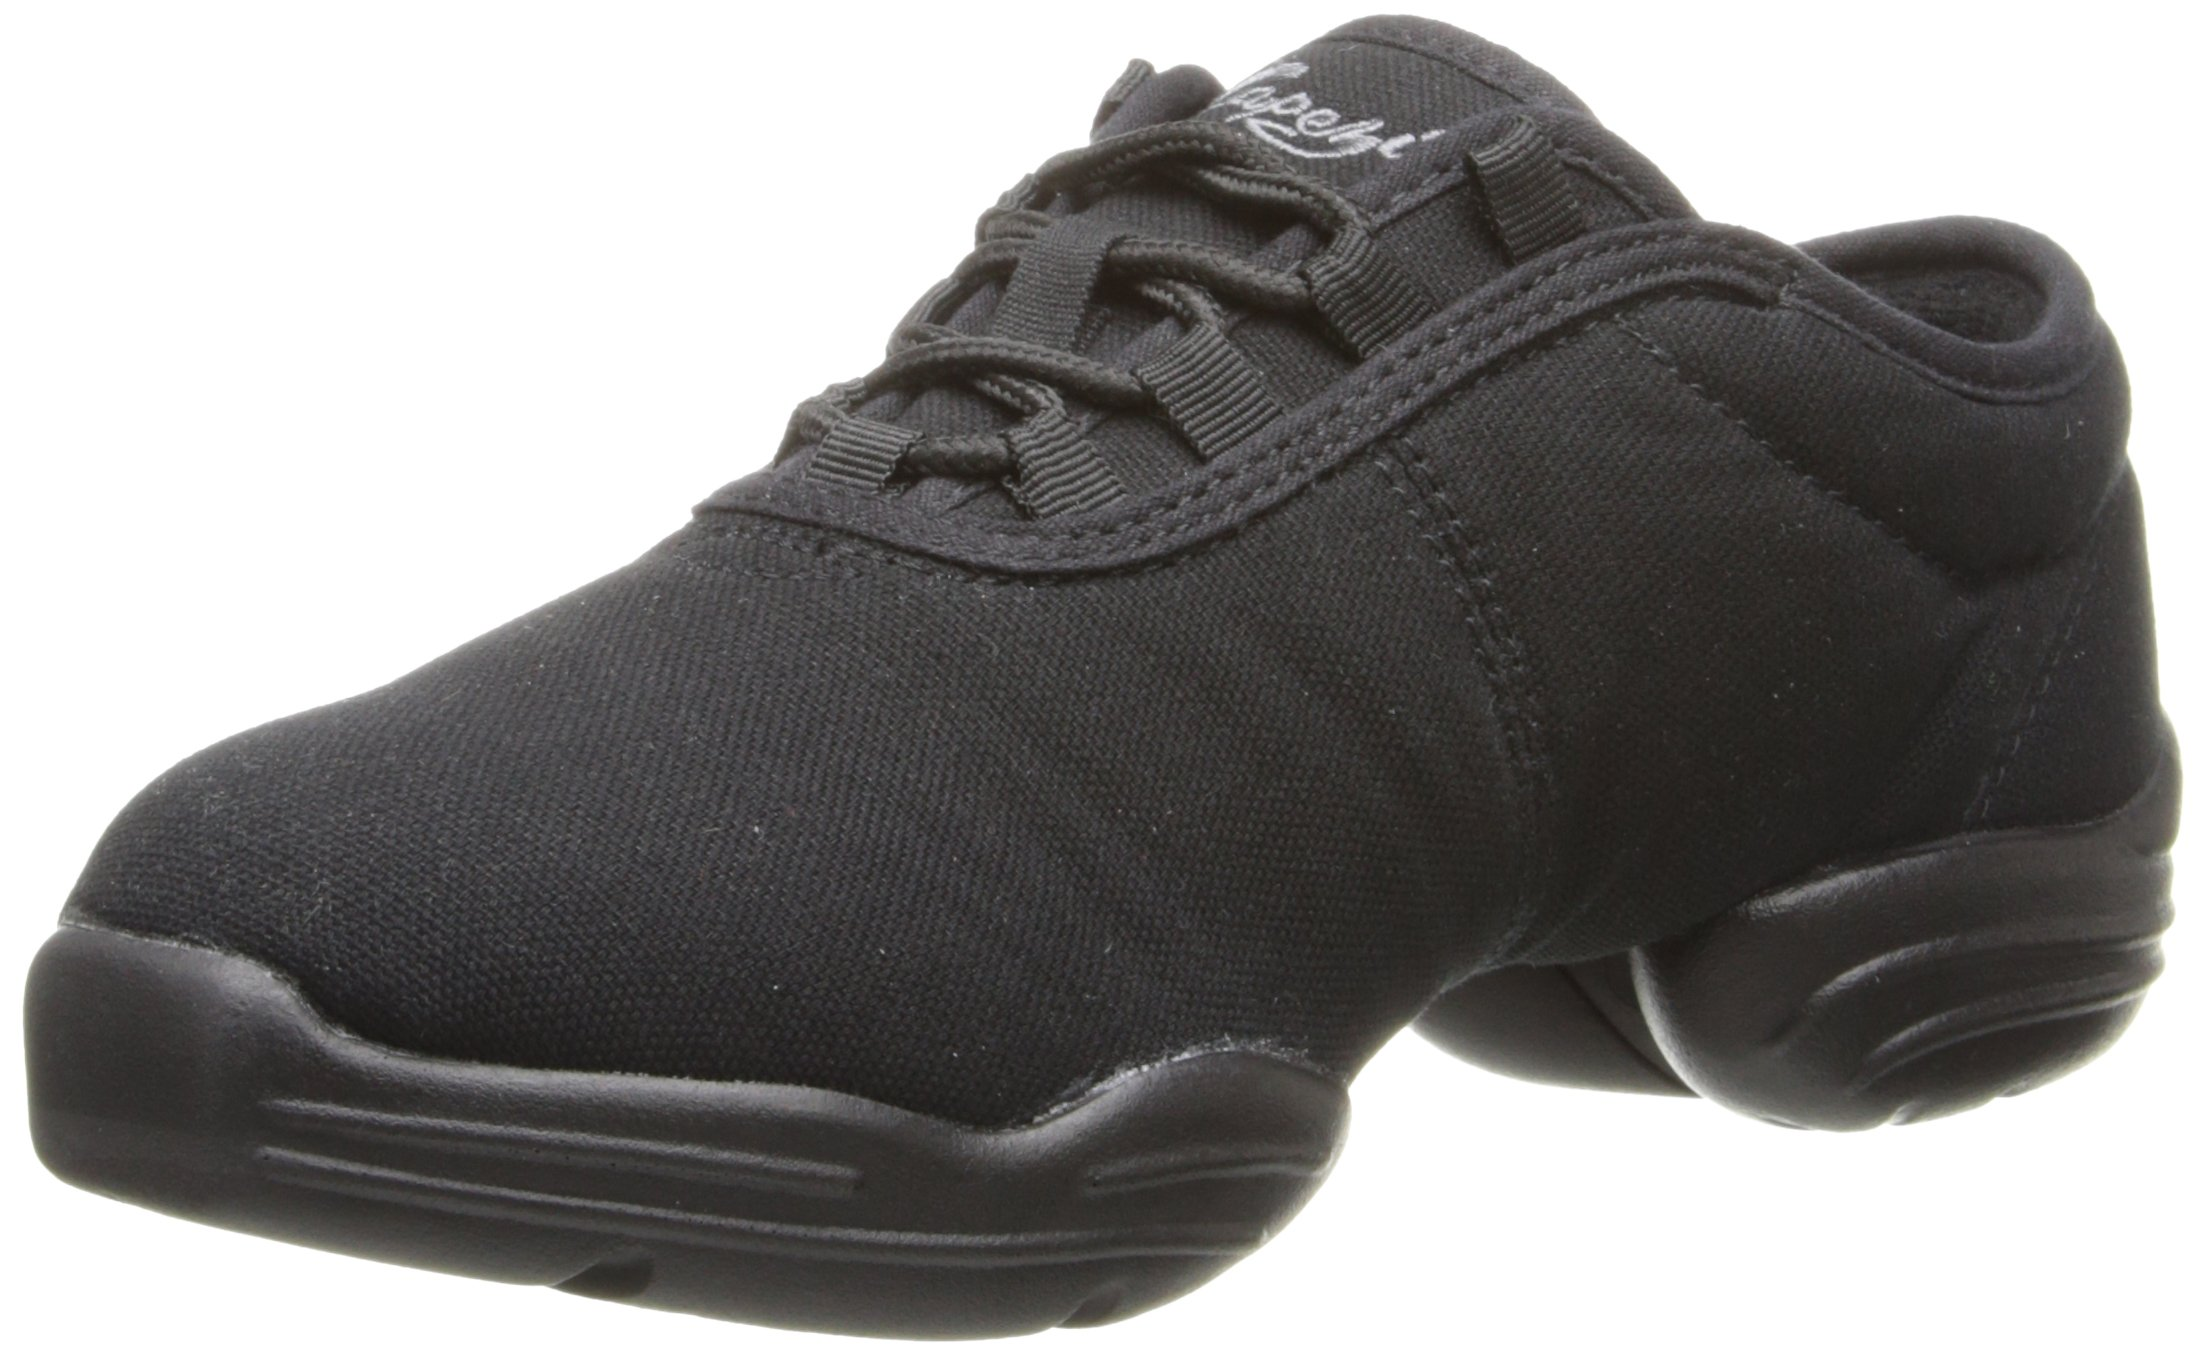 Capezio Women's Canvas Dance Sneakers